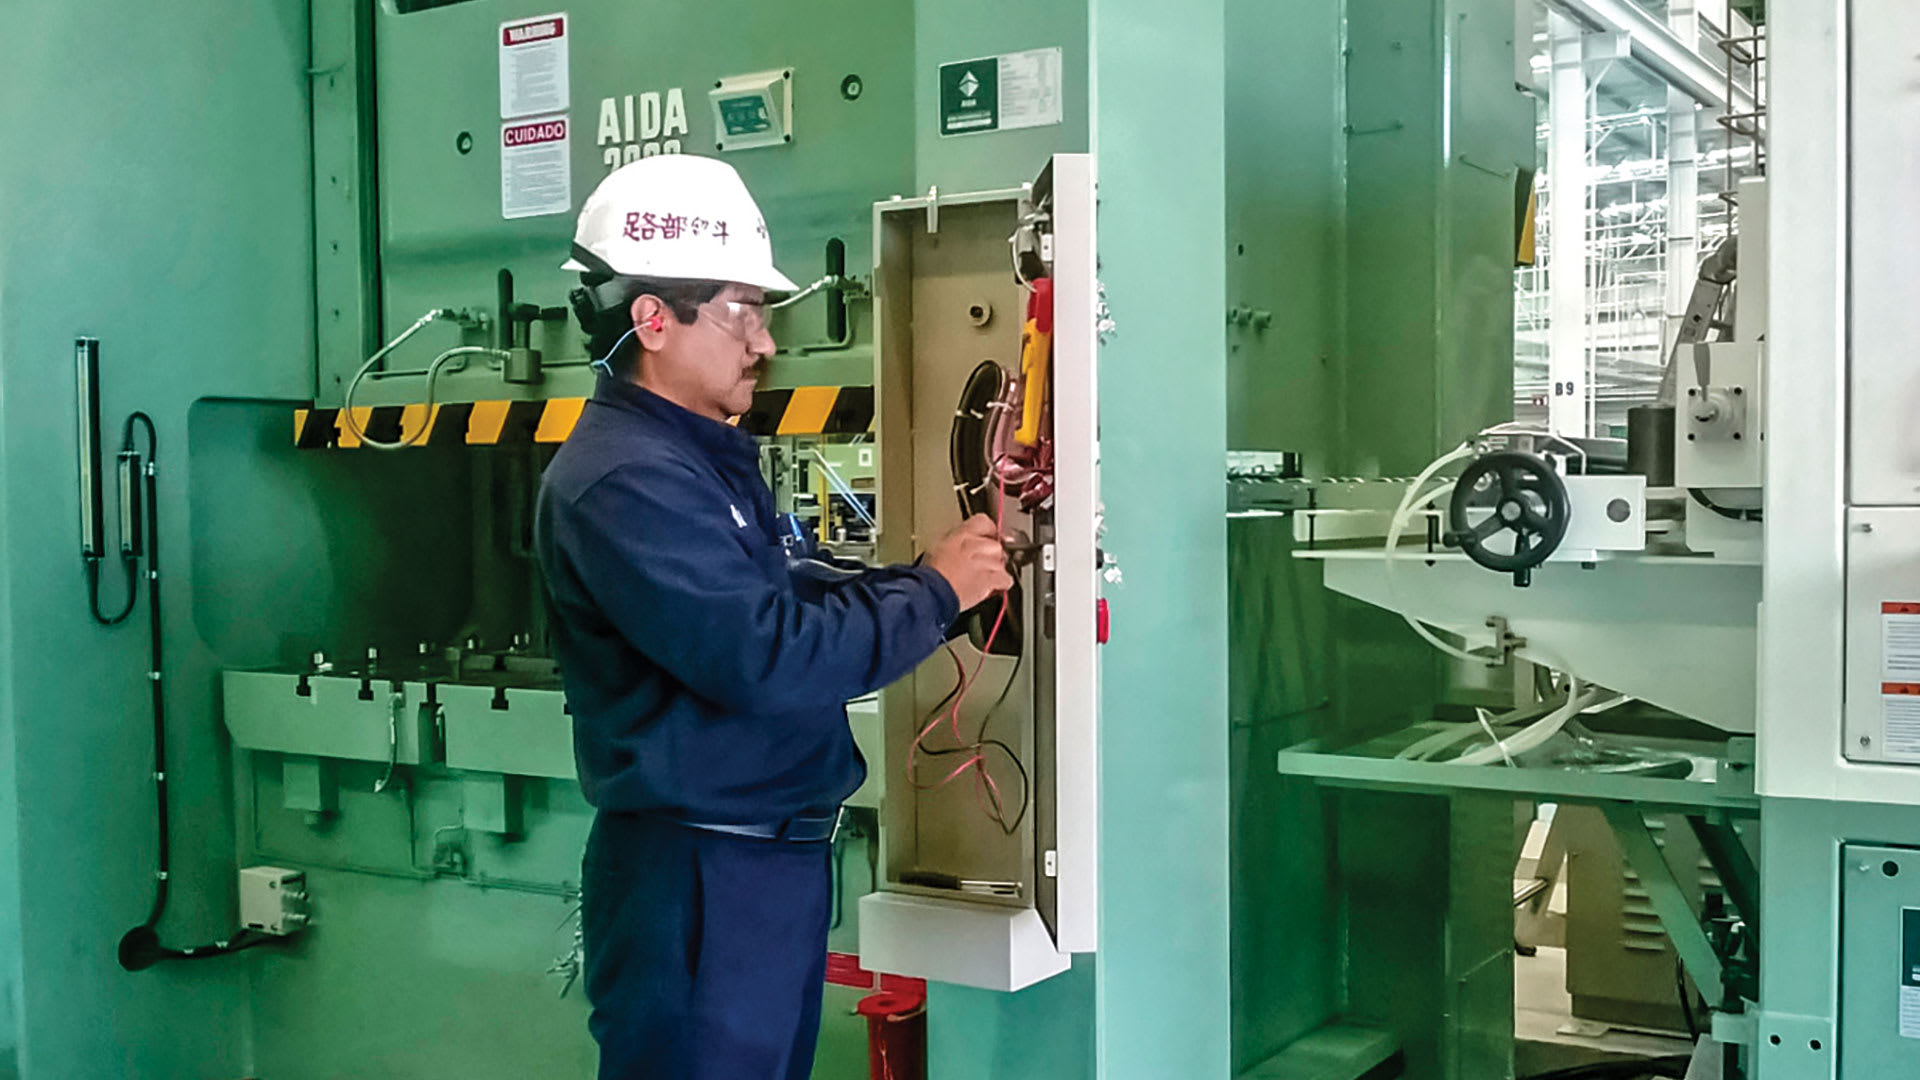 AIDA de Mexico Stamping Press Control Upgrade